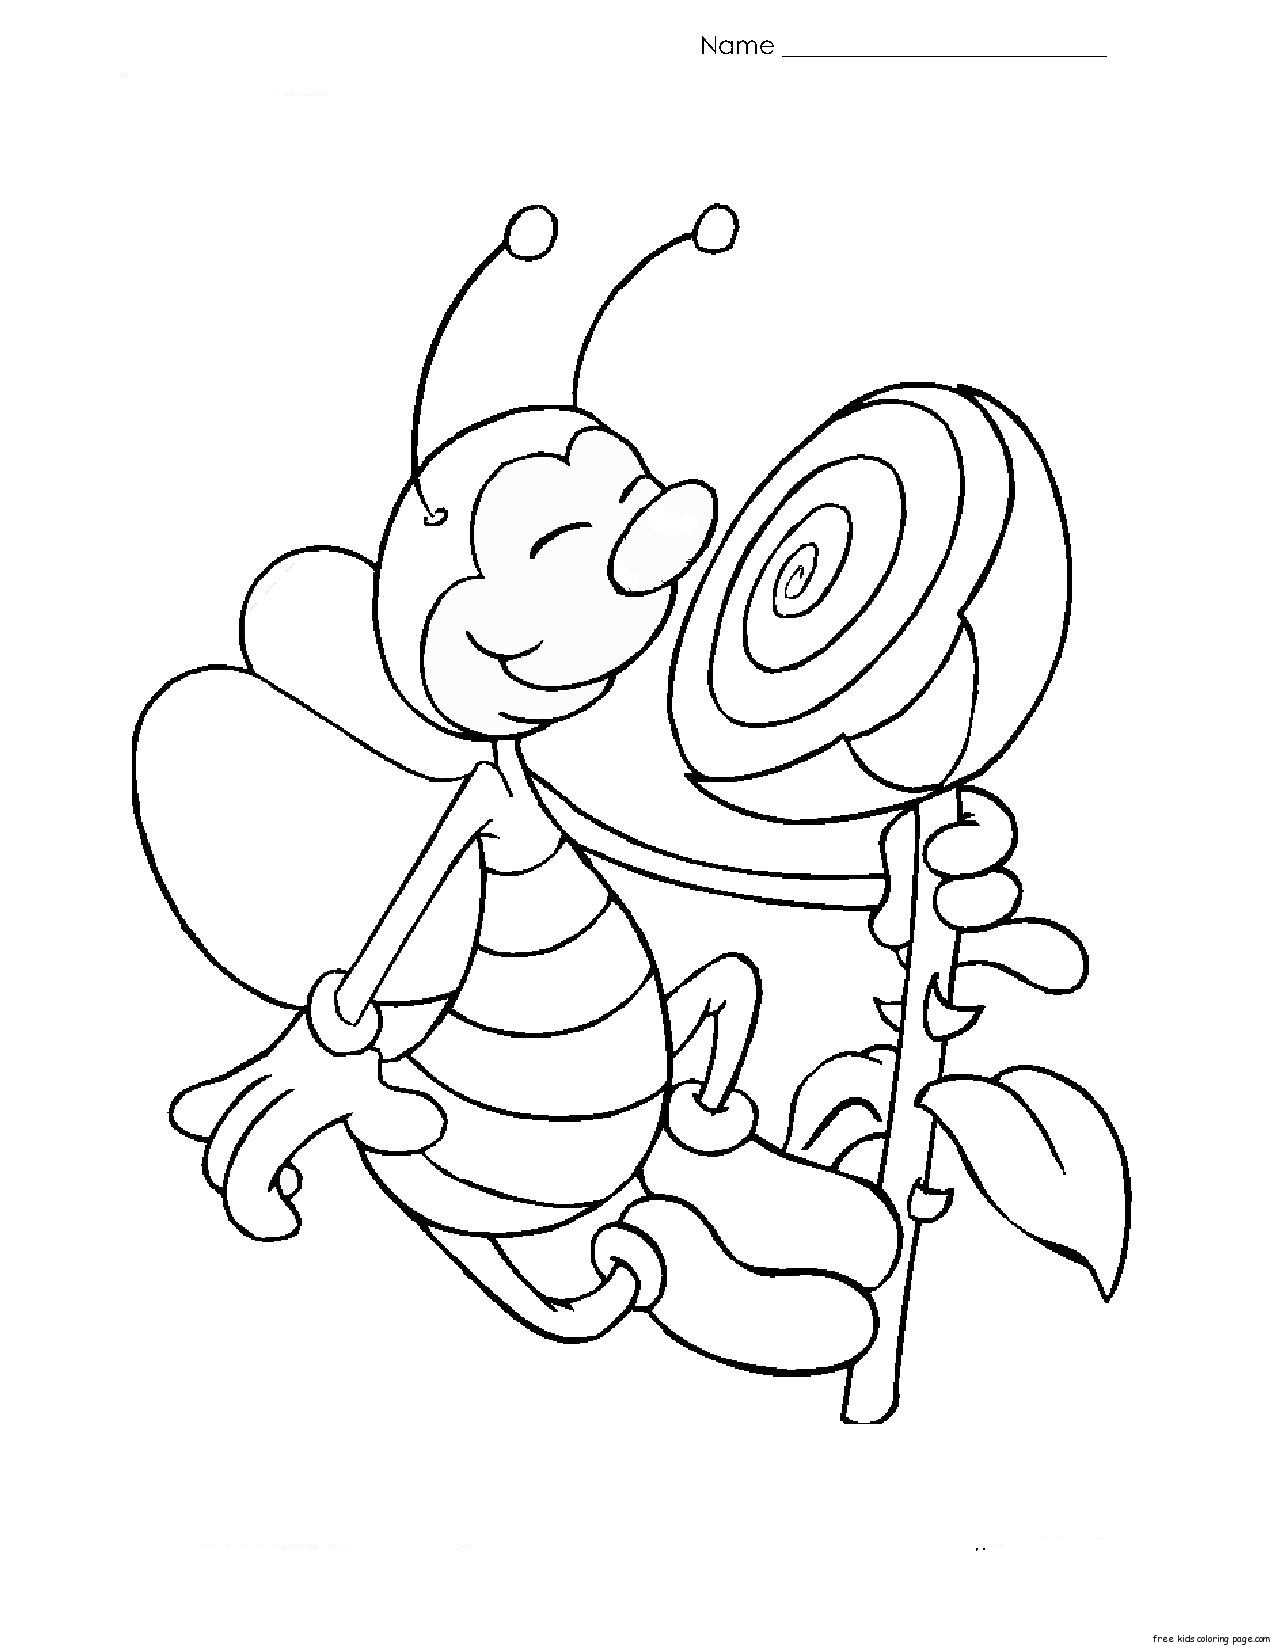 Print out coloring page Bee with flower for kidsFree